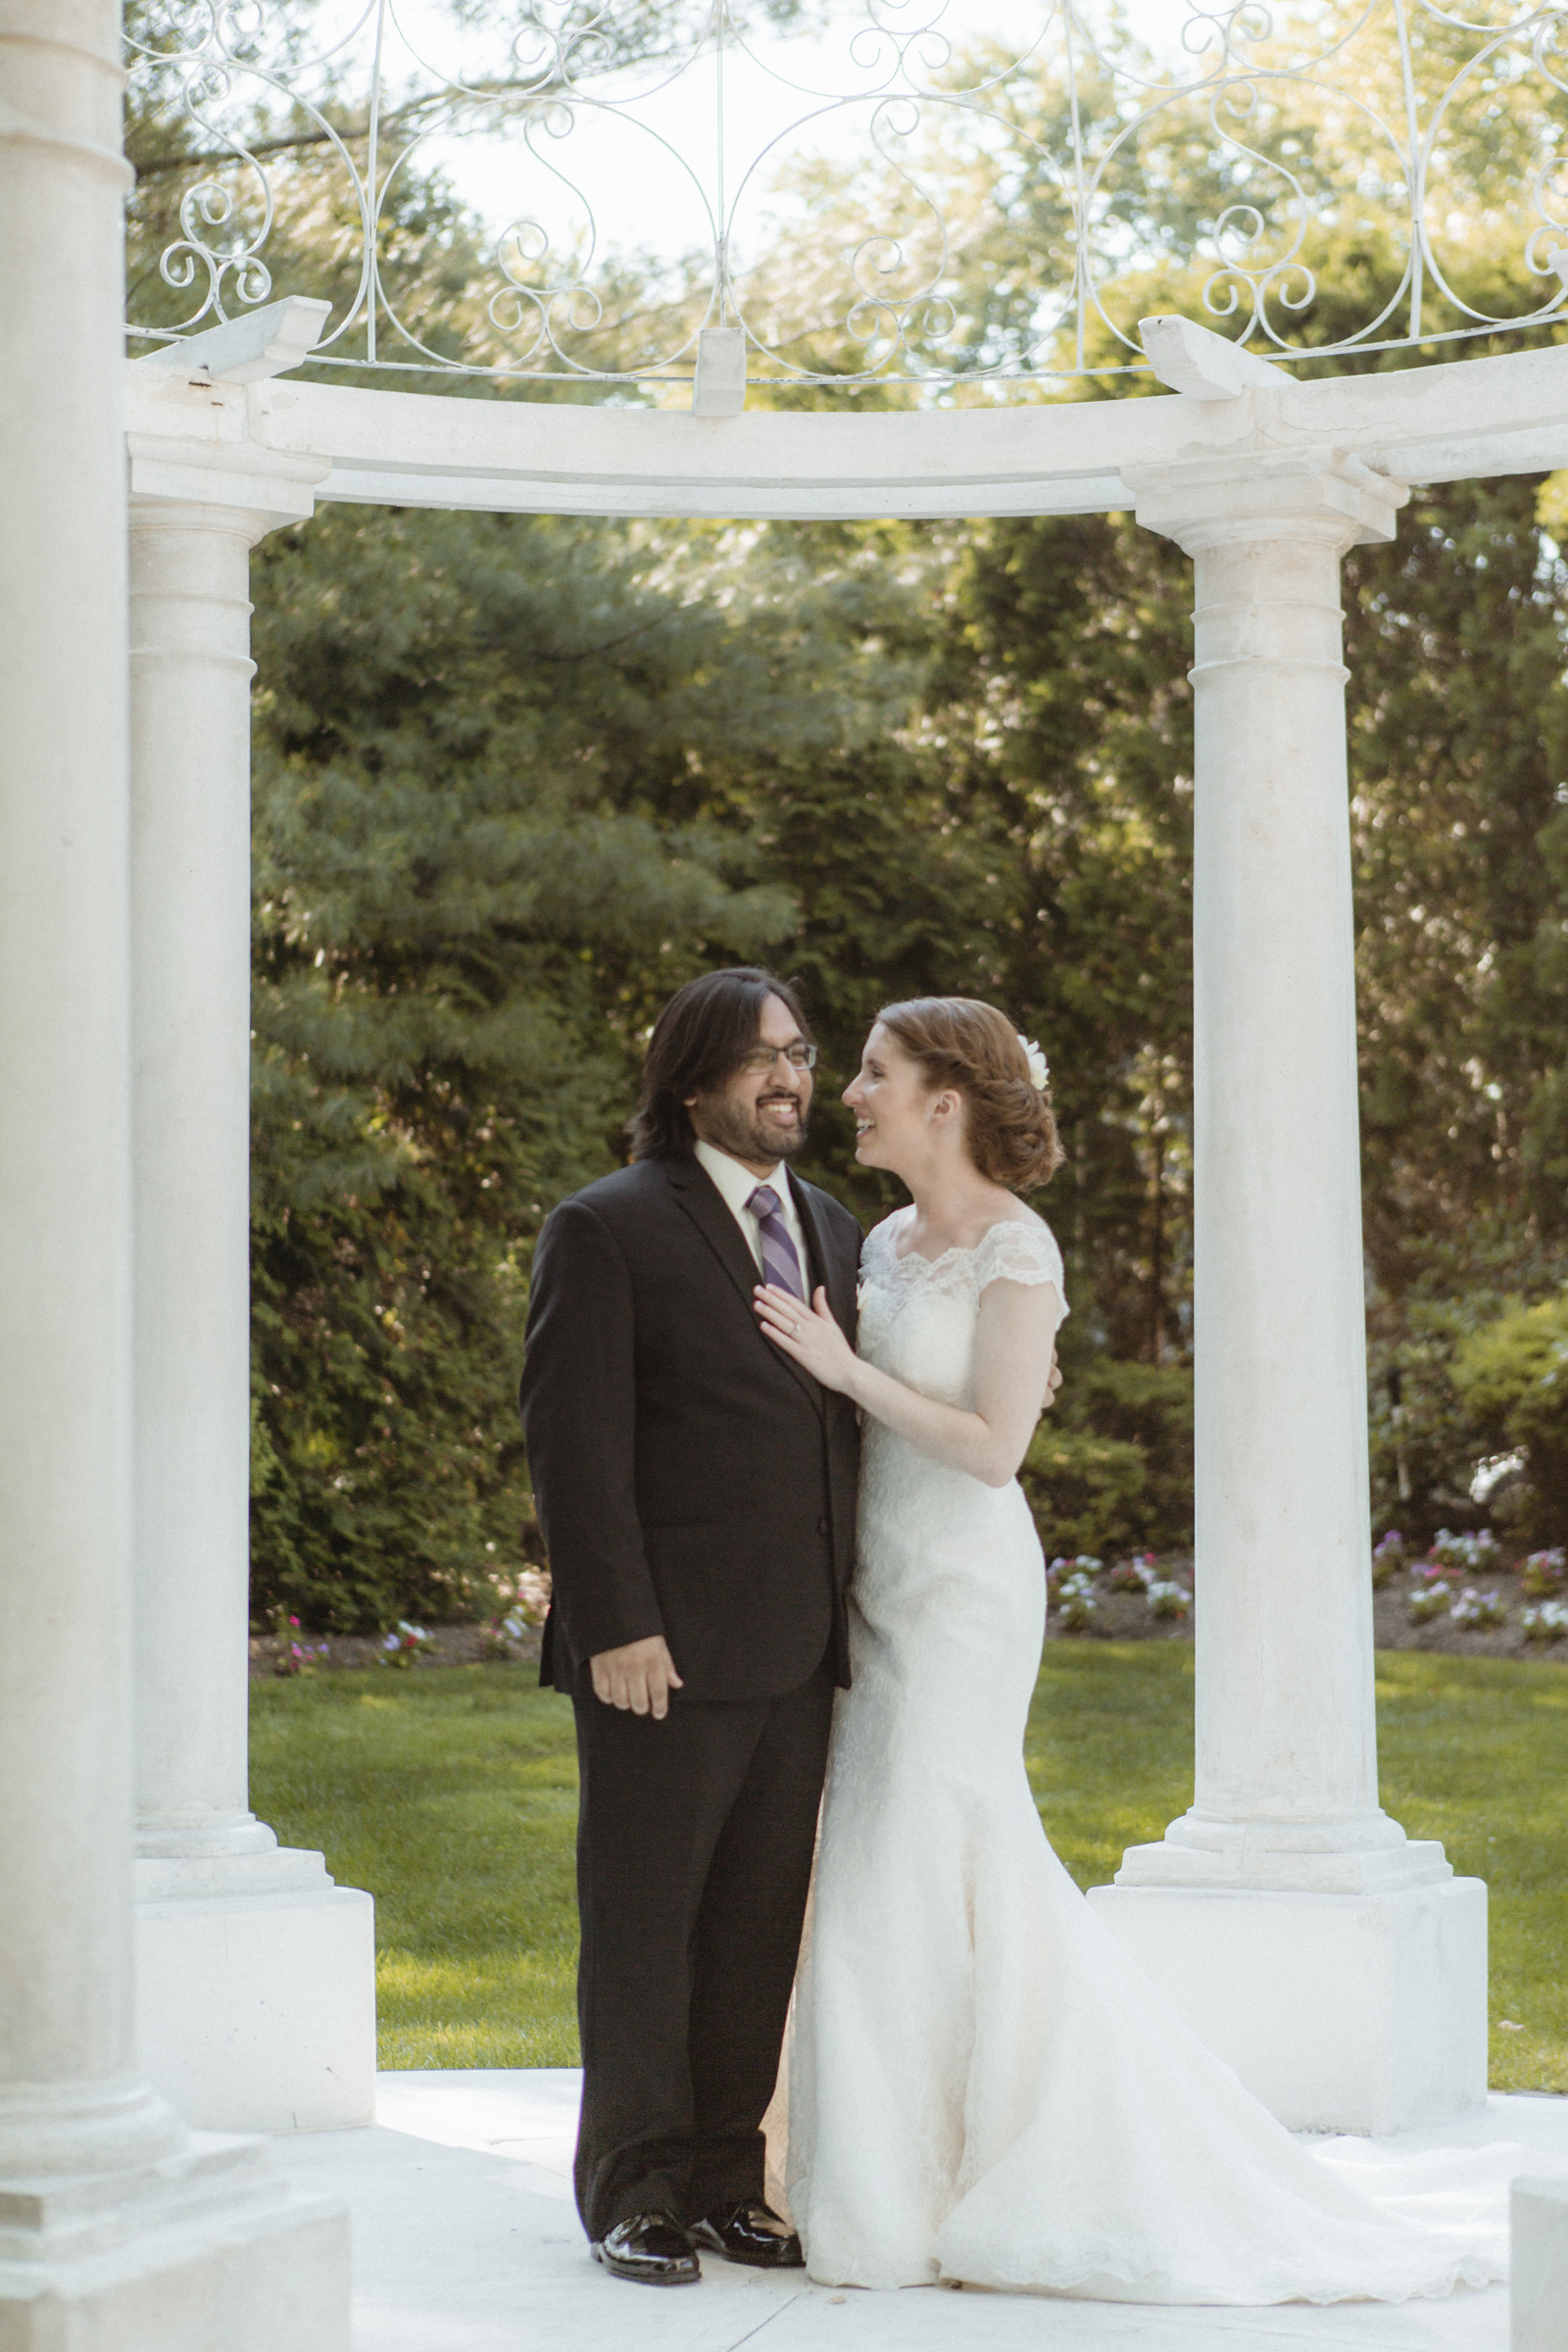 Couple laugh during their first look - Estate at Florentine Gardens wedding - Hudson Valley Wedding - Kelsey & Anish's wedding - Amy Sims Photography